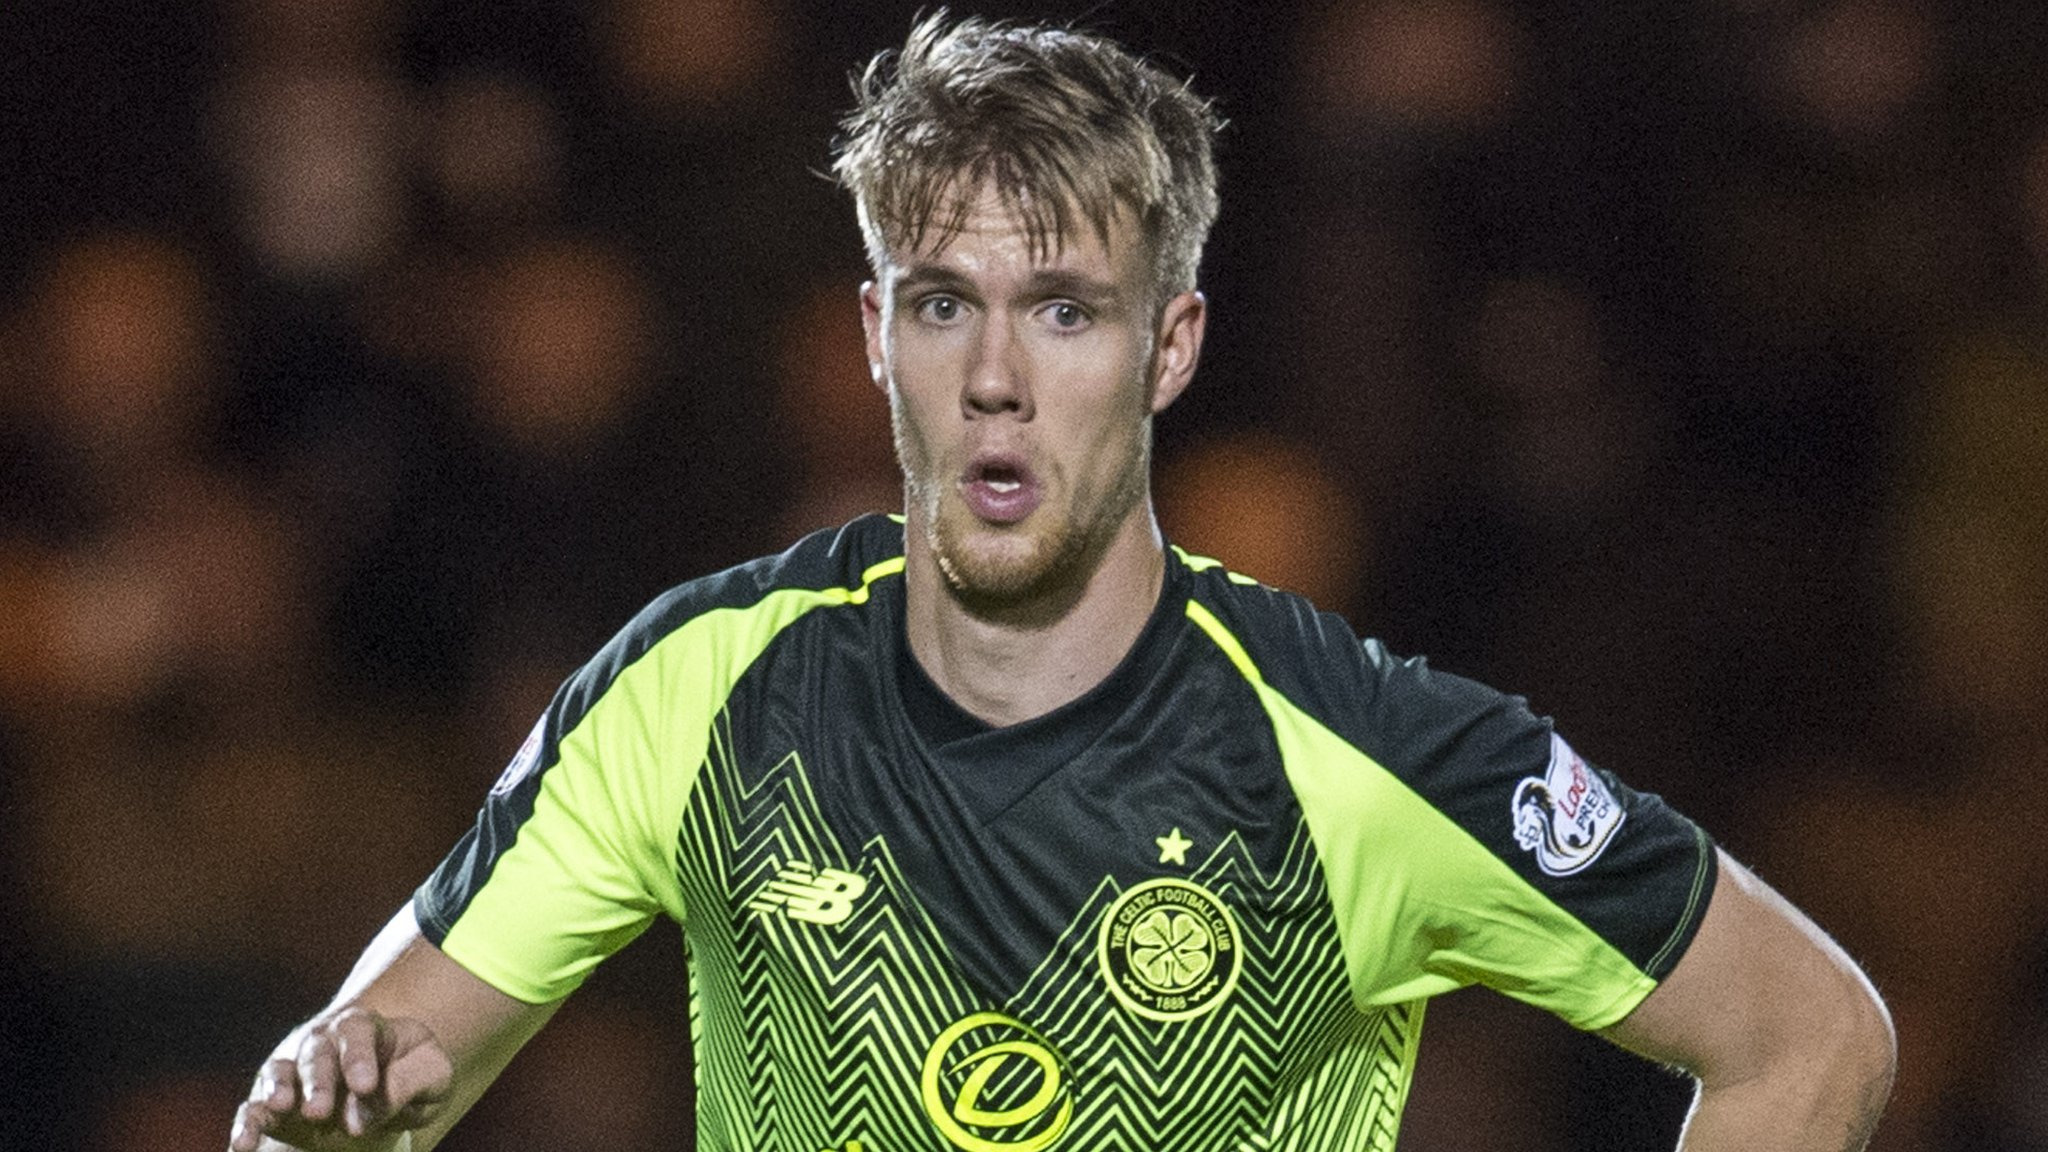 Europa League: Celtic v Rosenborg - Kristoffer Ajer a doubt with illness